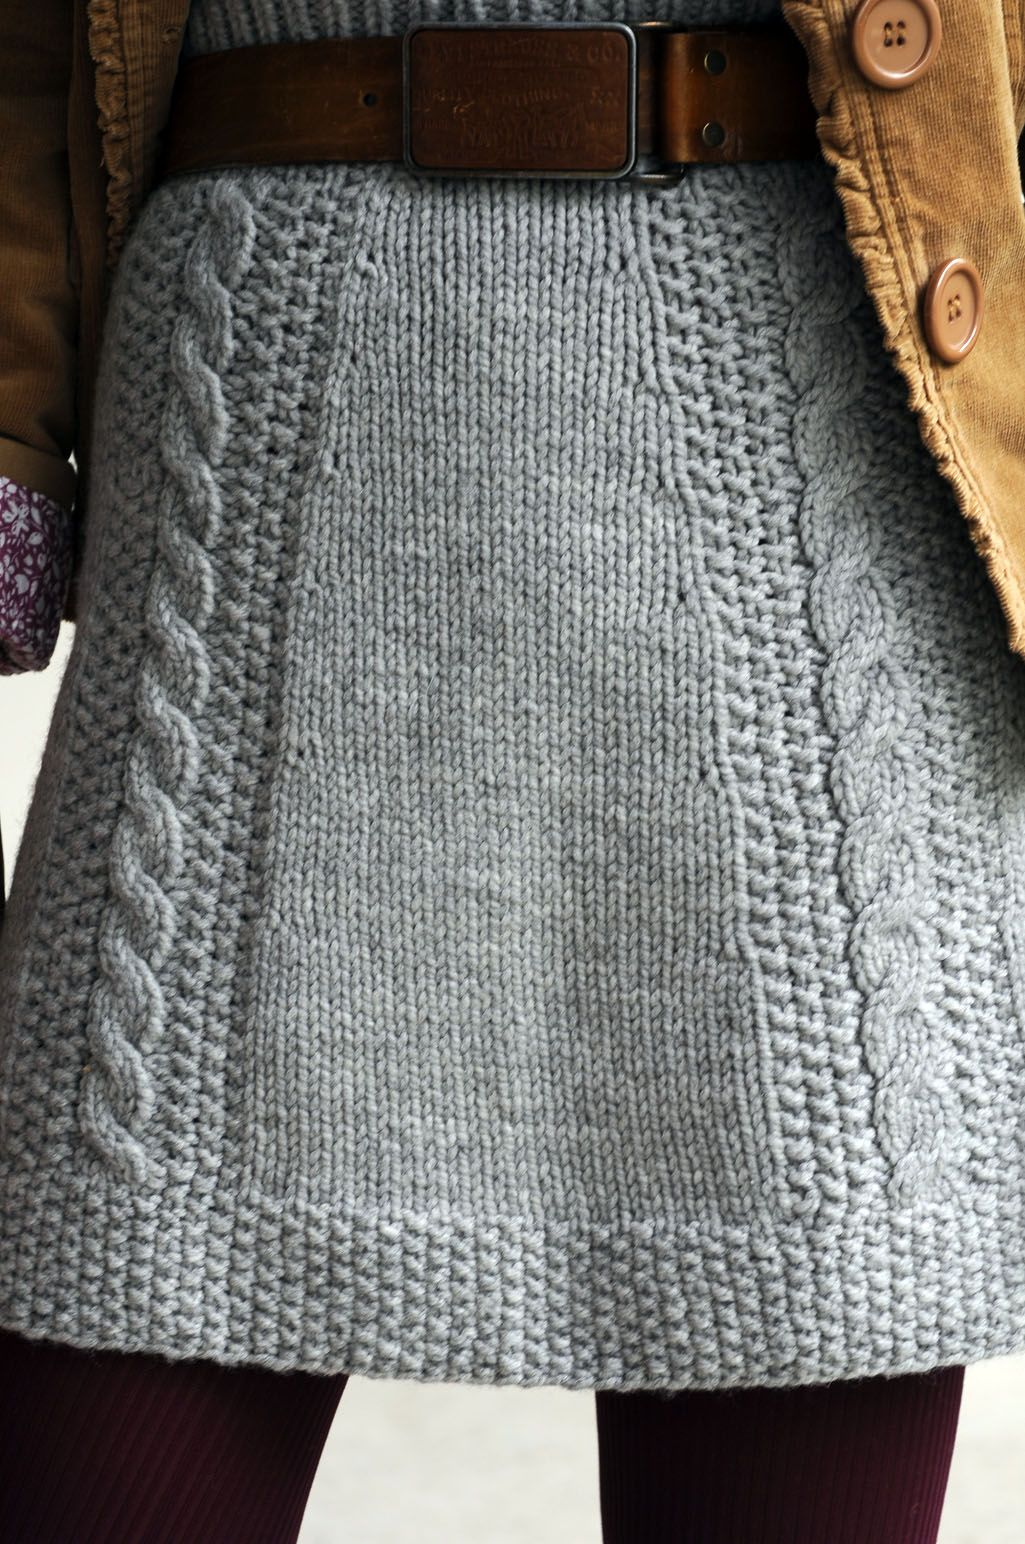 Bryn Mawr Skirt - Knitting Daily/ interweave.  What a terrific skirt!!! That's probably the nicest knit skirt I've ever seen!